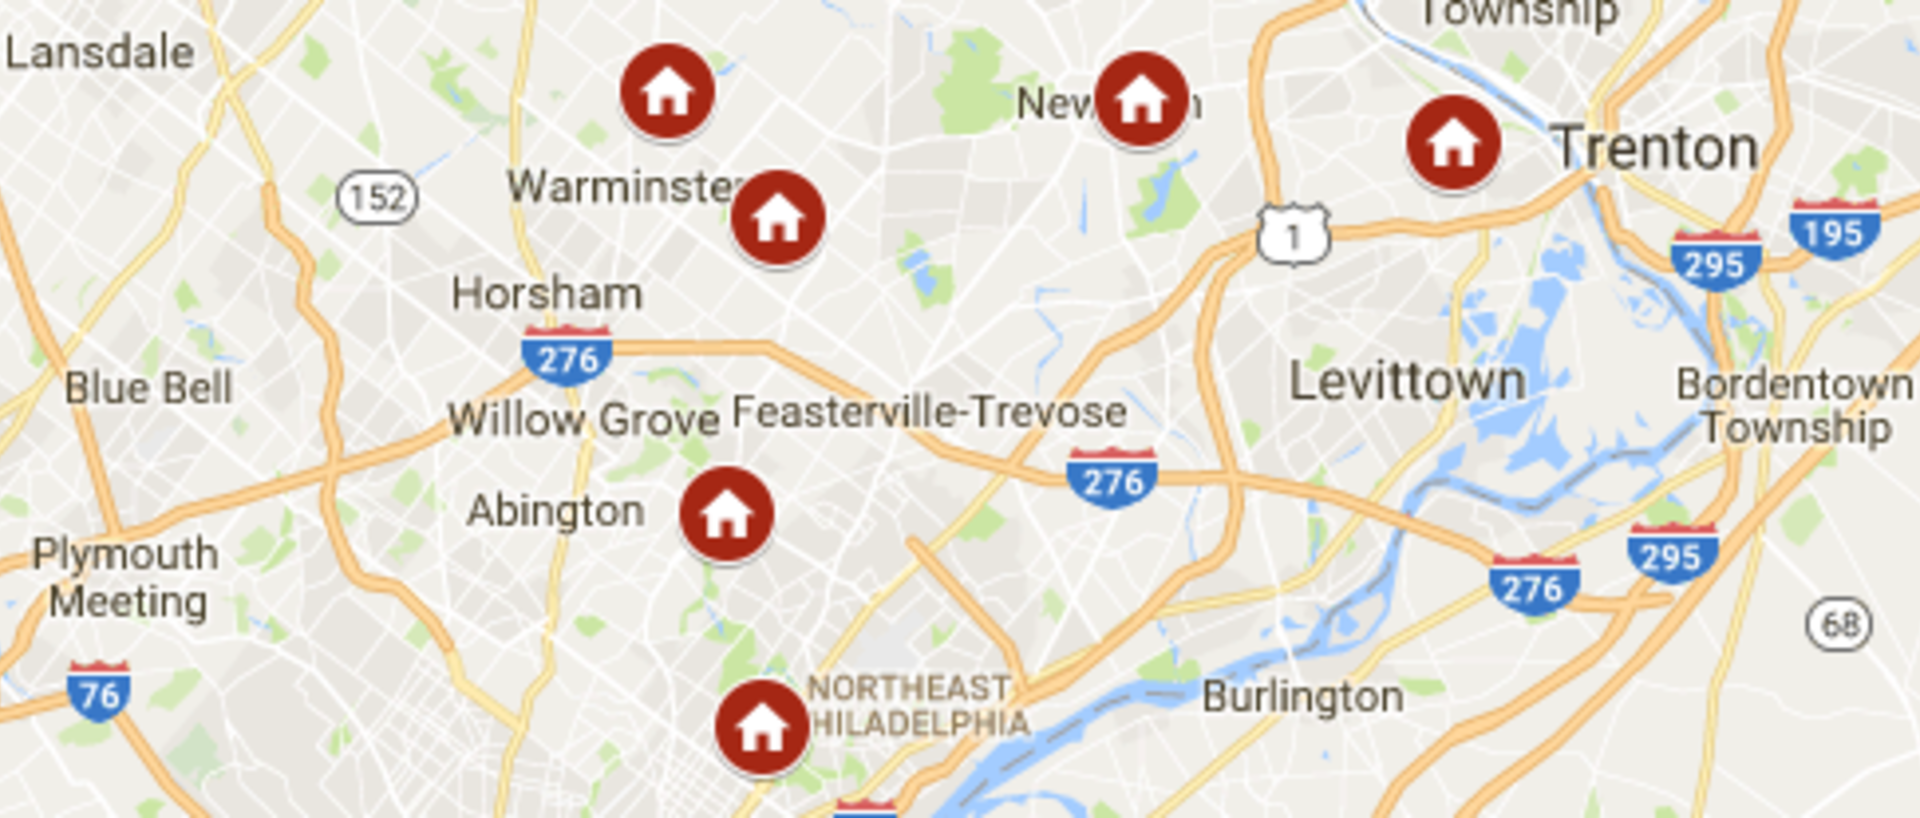 Keller Williams Newtown's Open Houses July 29th- July 30th